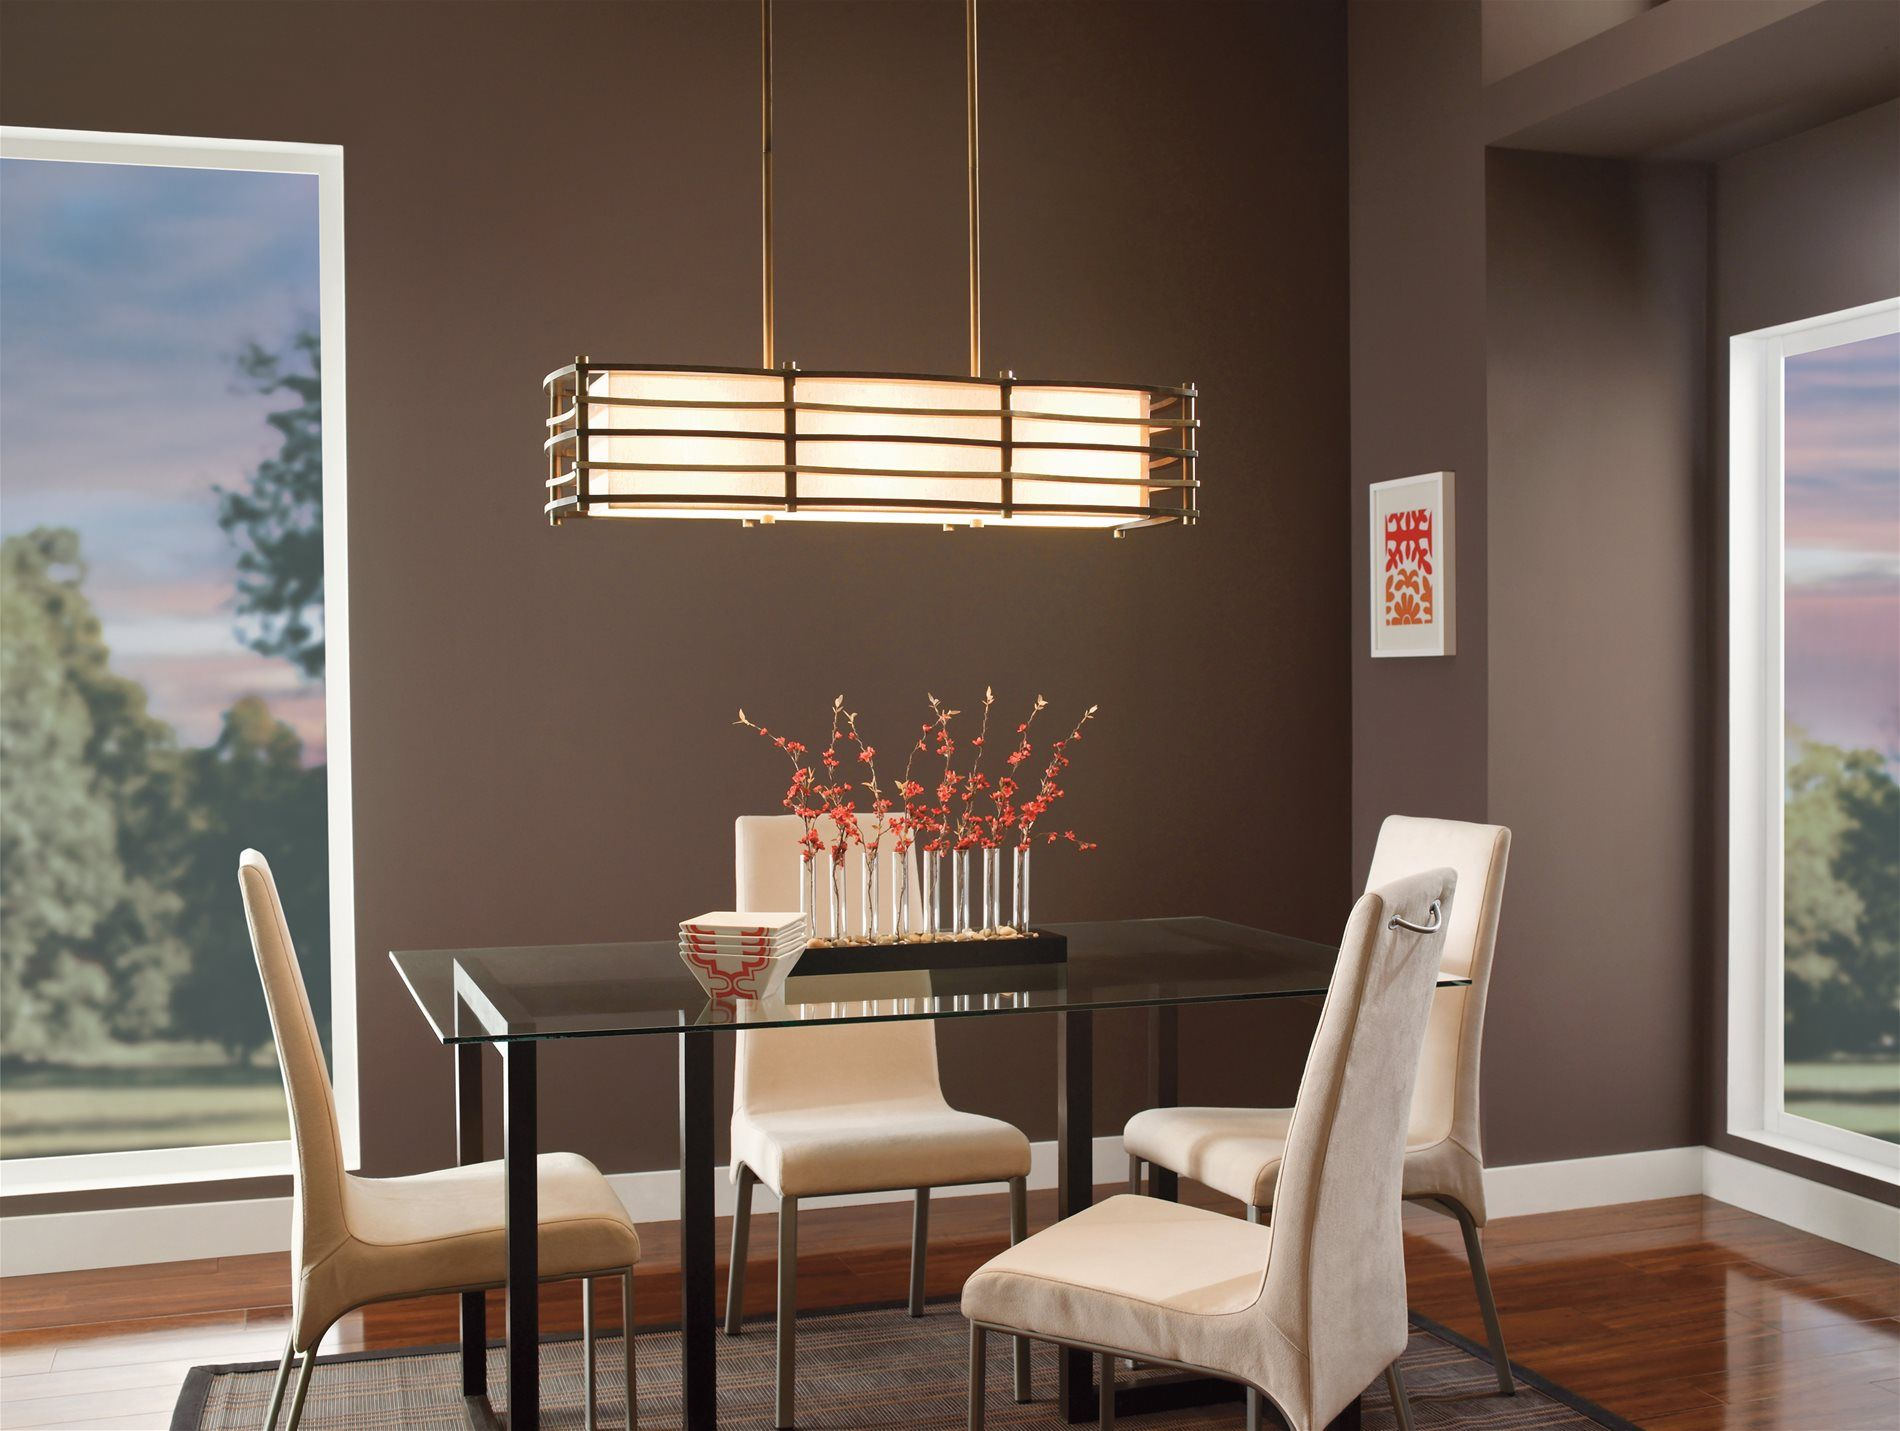 Kichler Dining Room Lighting Inspiration South Shore Decorating Kichler Lighting 42061Cmz Moxie Design Decoration